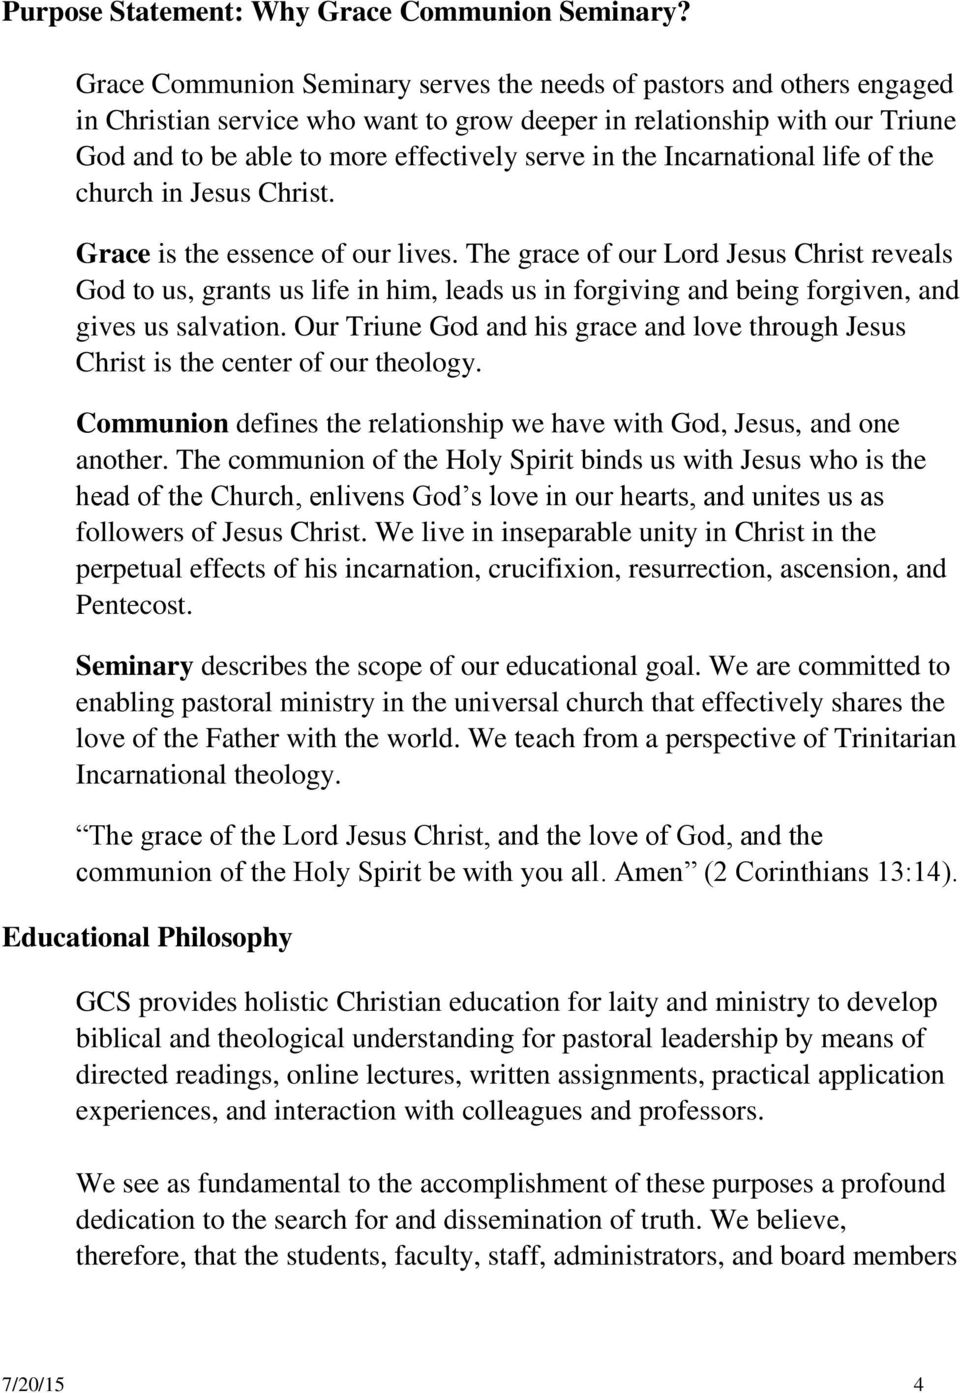 the Incarnational life of the church in Jesus Christ. Grace is the essence of our lives.